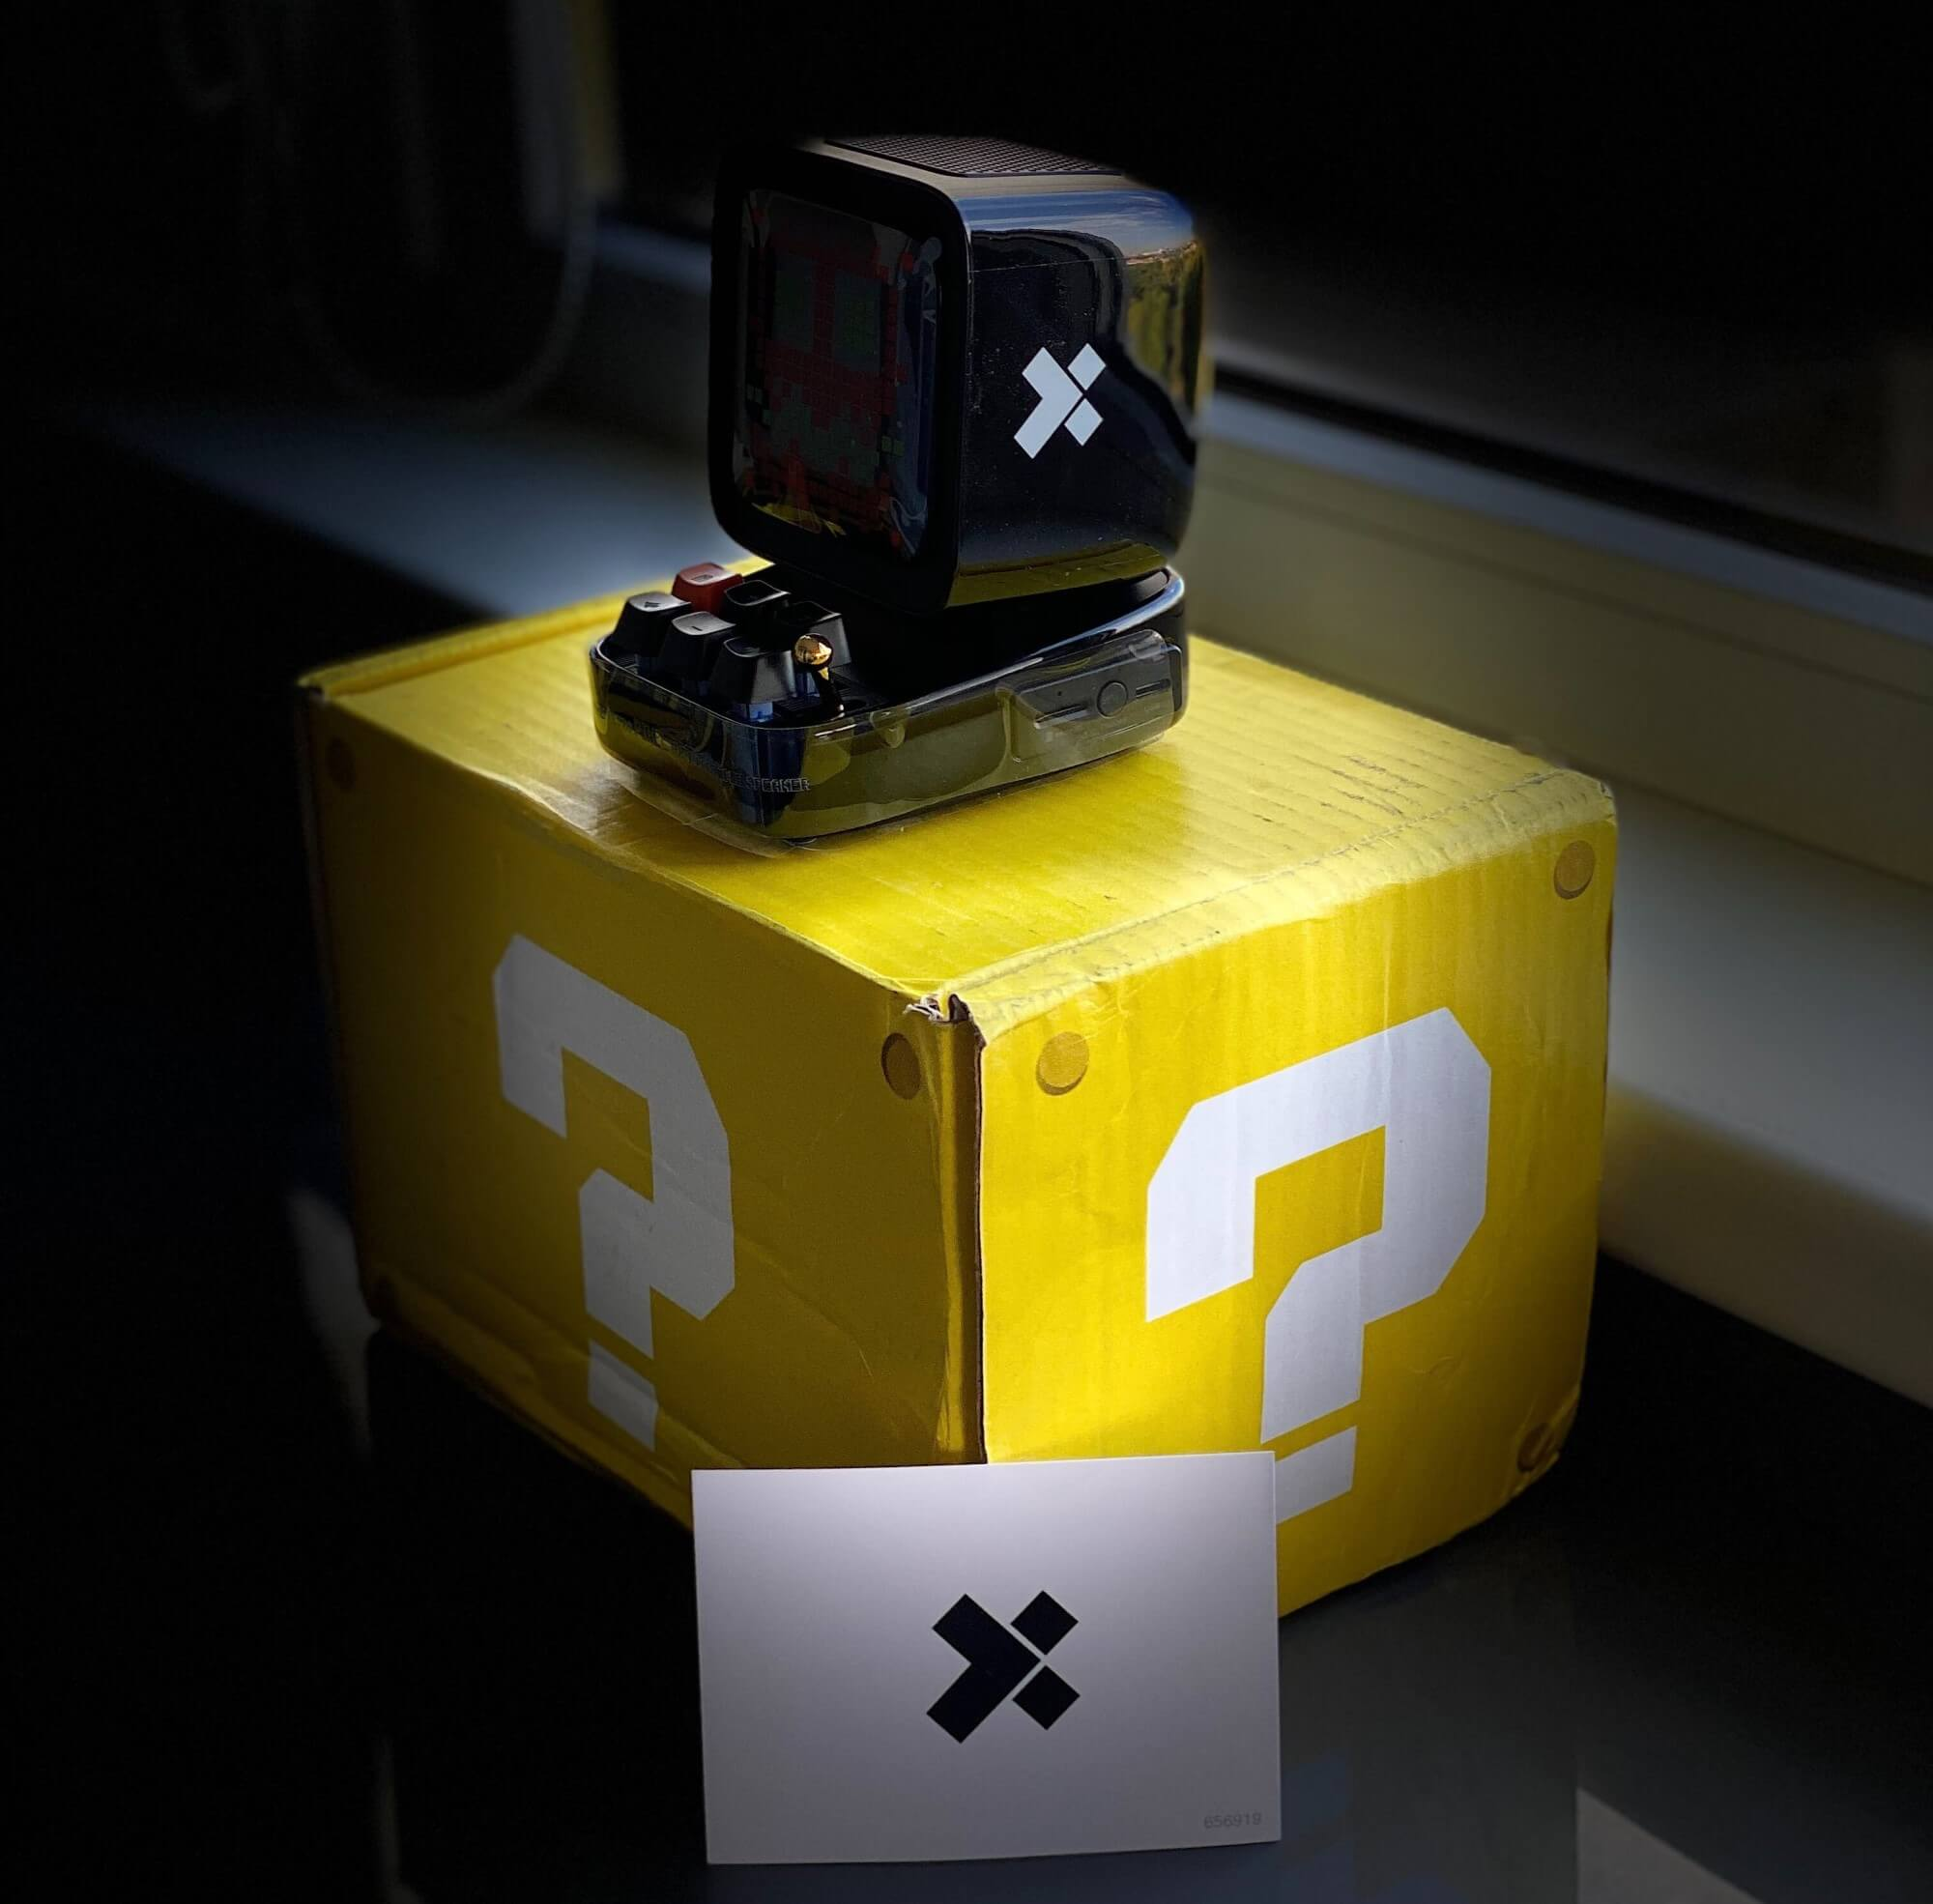 a box with a question mark, an X-Team envelope, and a Gameboy-ish device